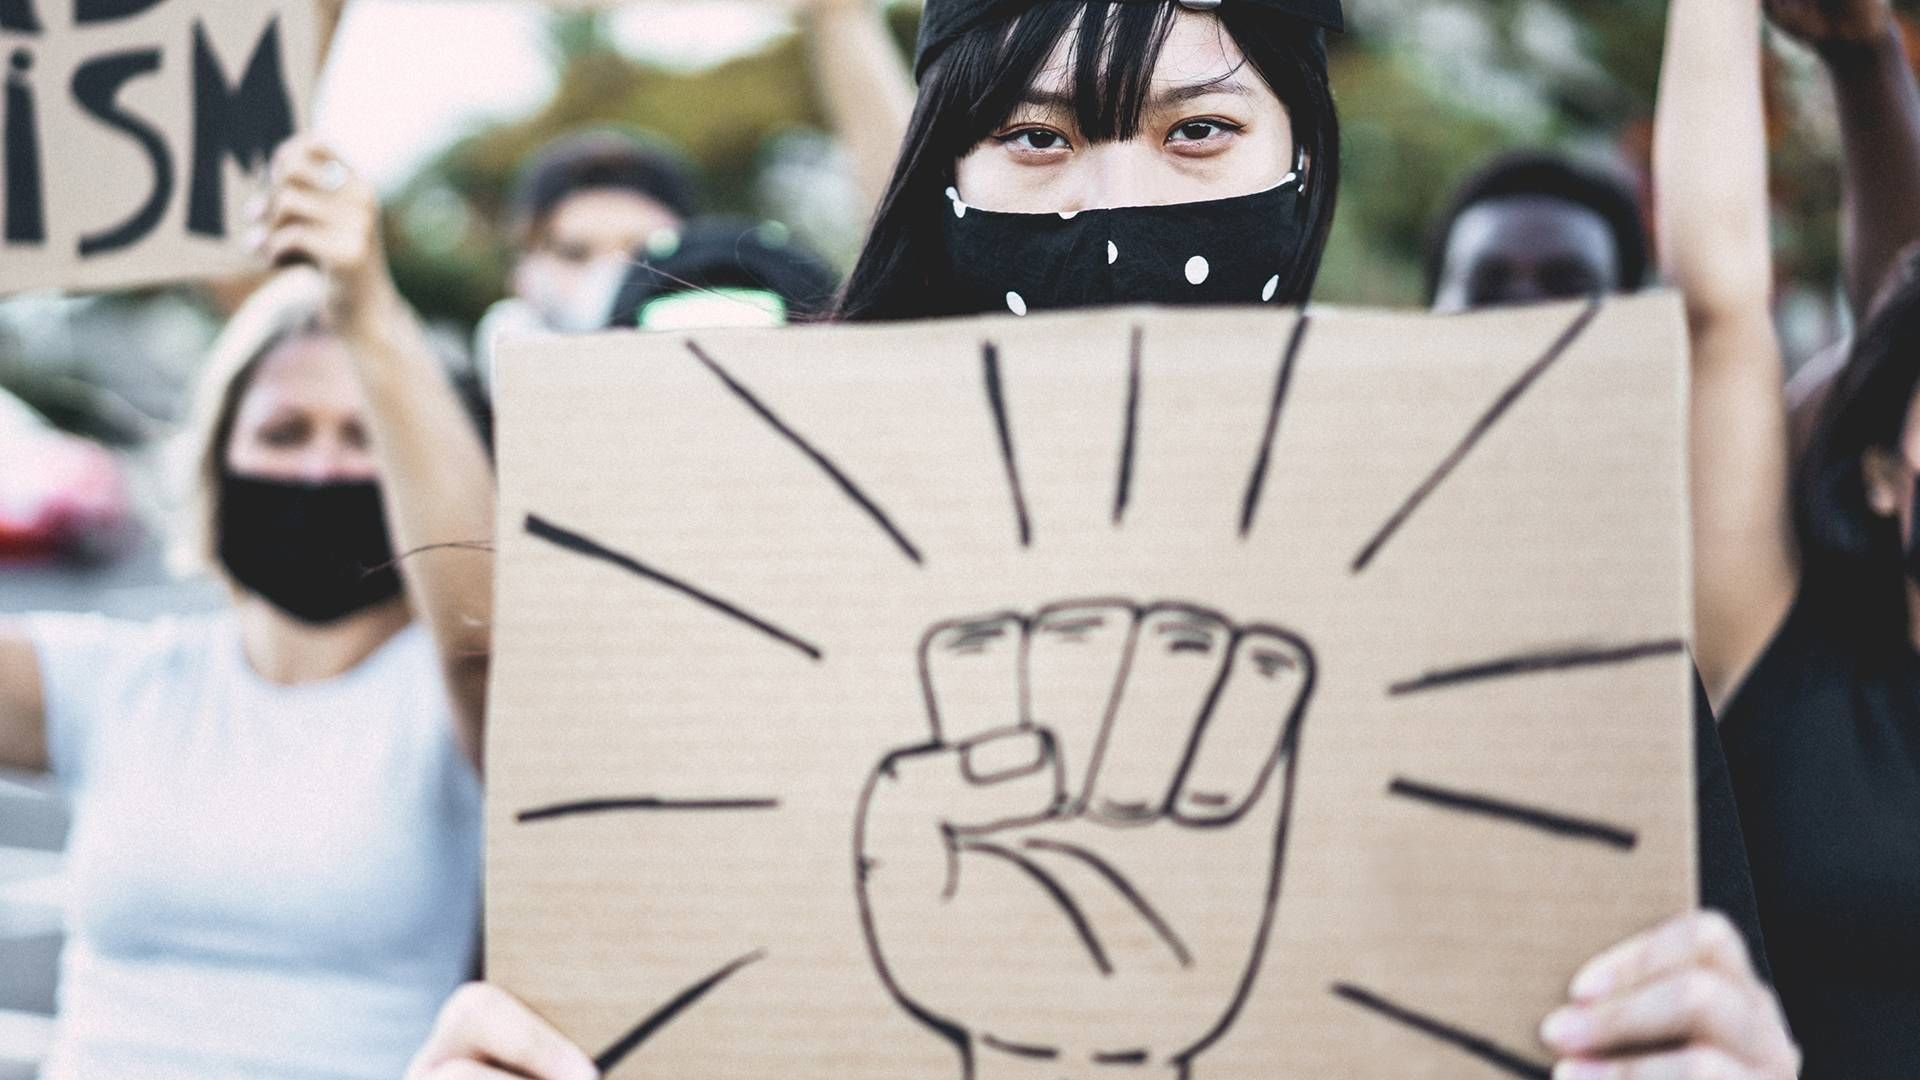 Asian girl wearing face mask while protest against racism on city street - Equal rights and demonstration concept - Focus on eyes